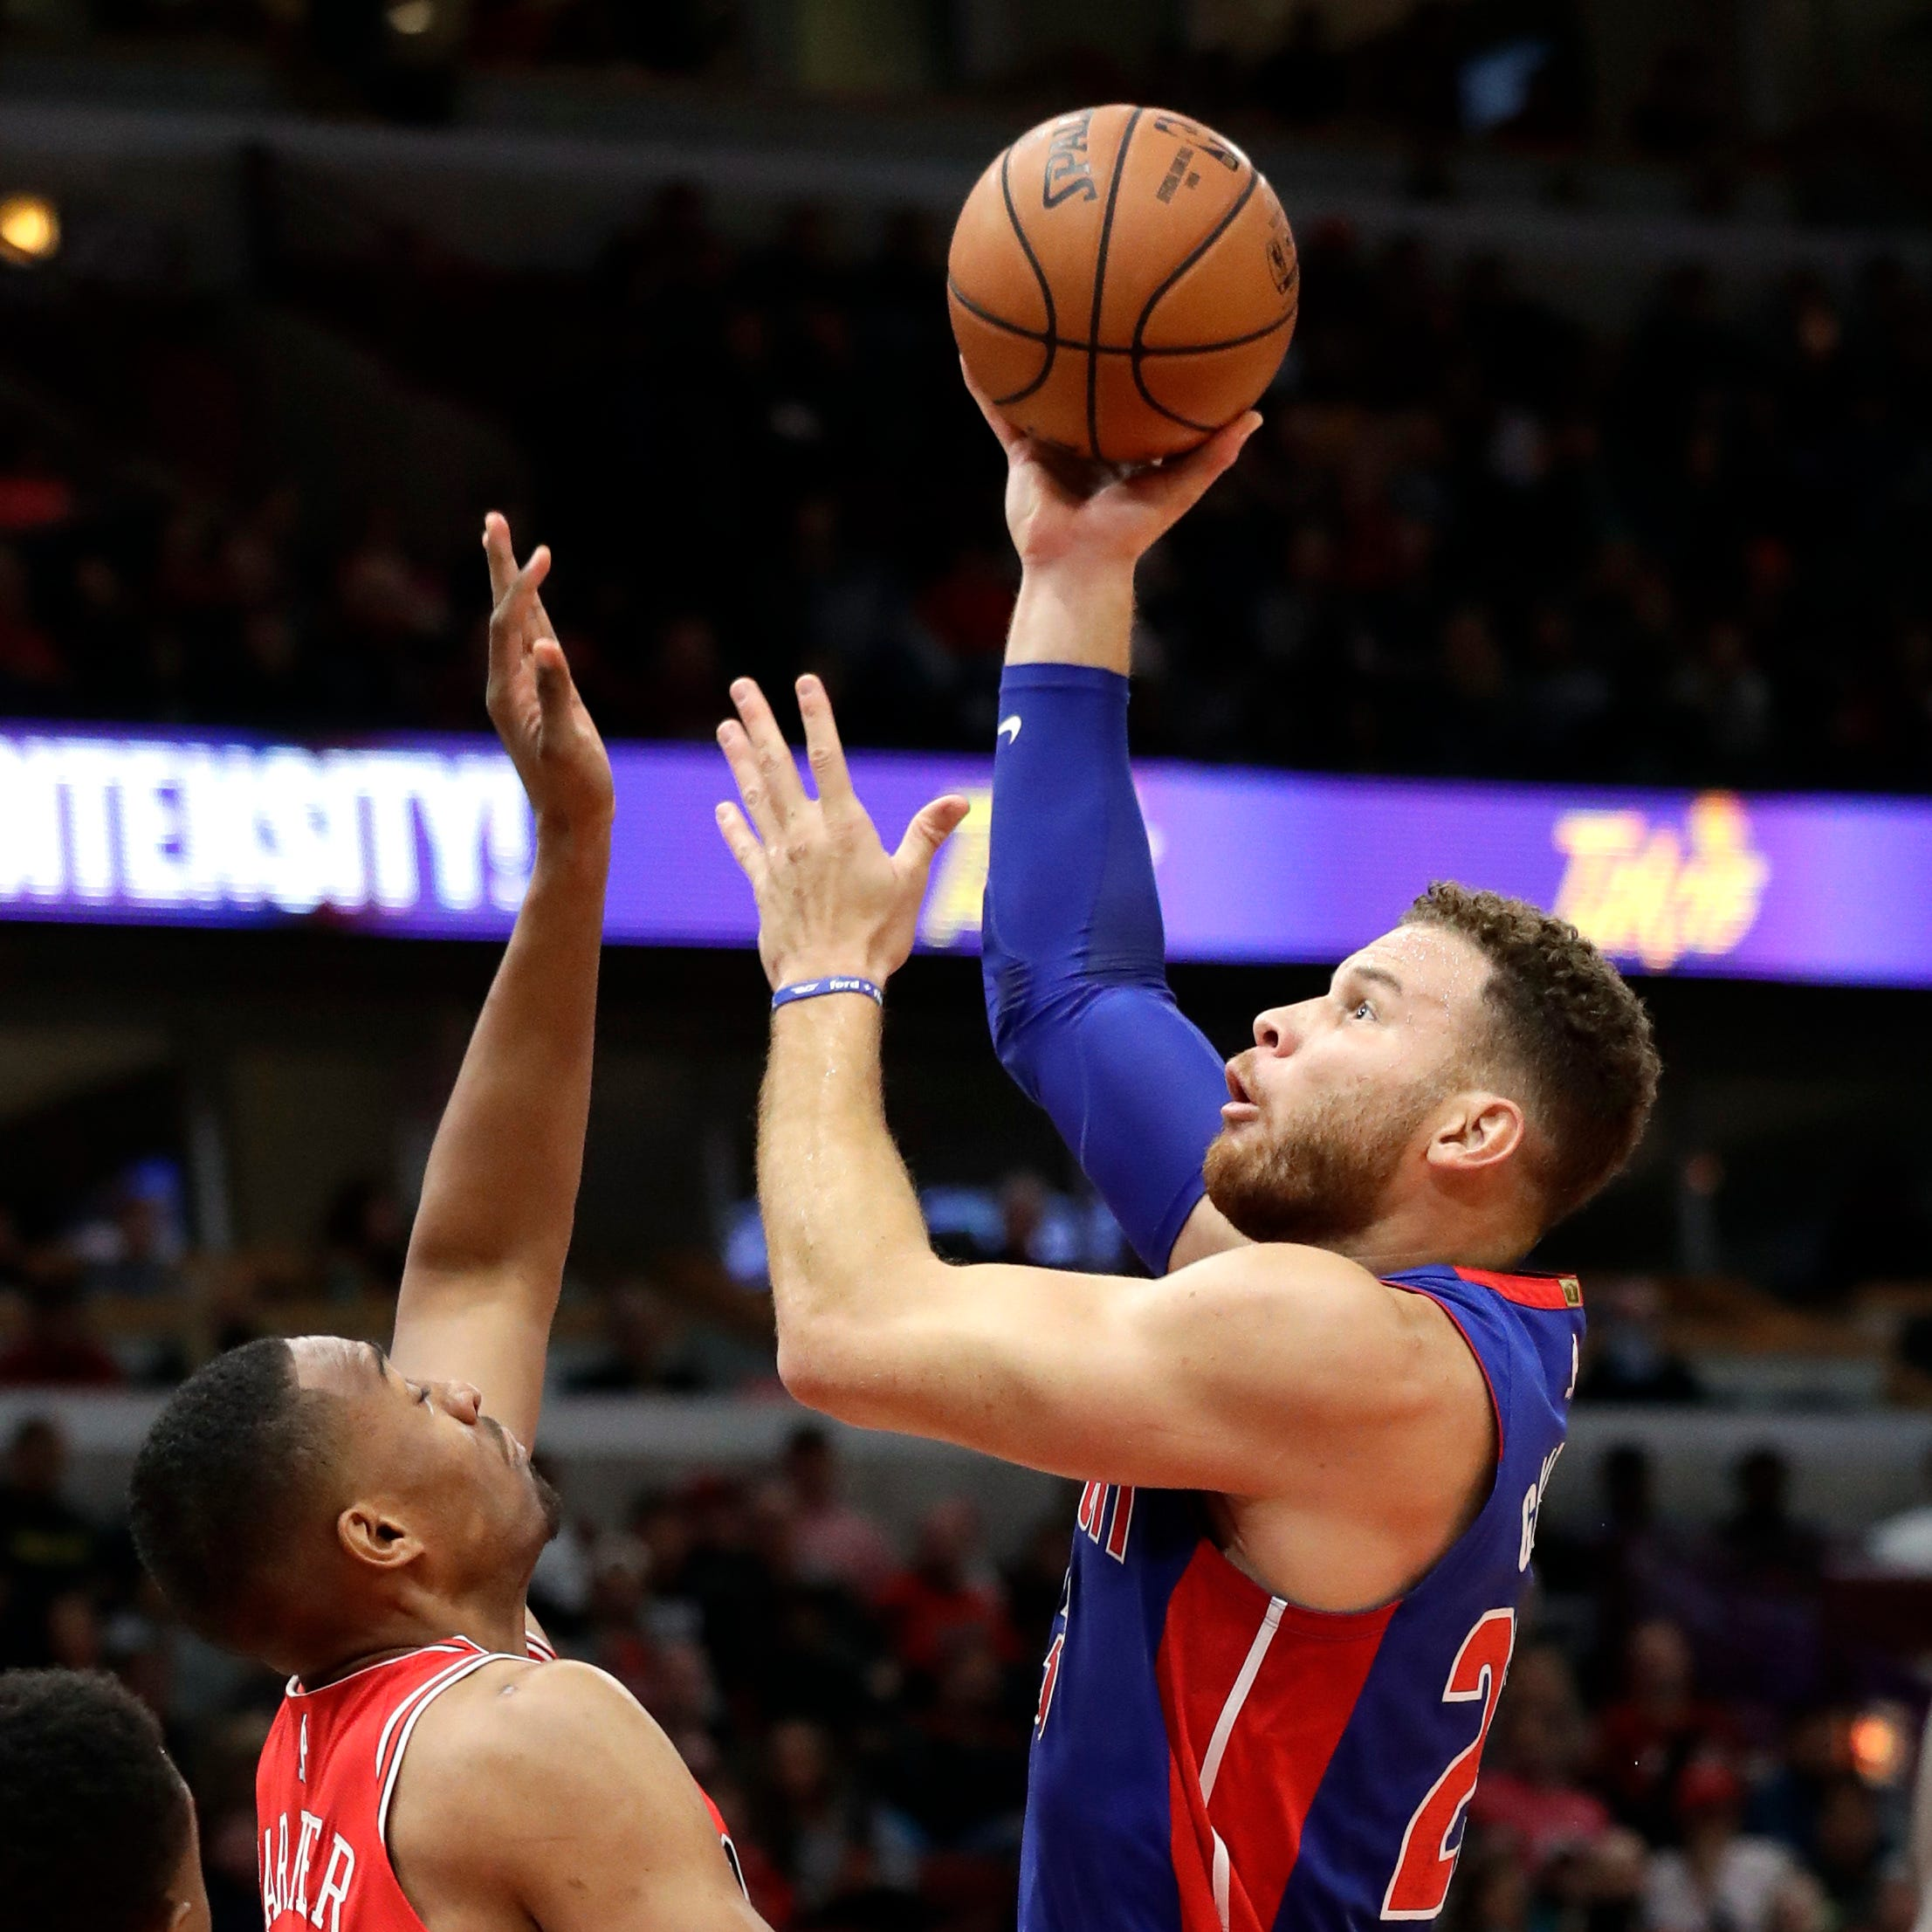 Pistons go to 2-0 behind Griffin's 33 points